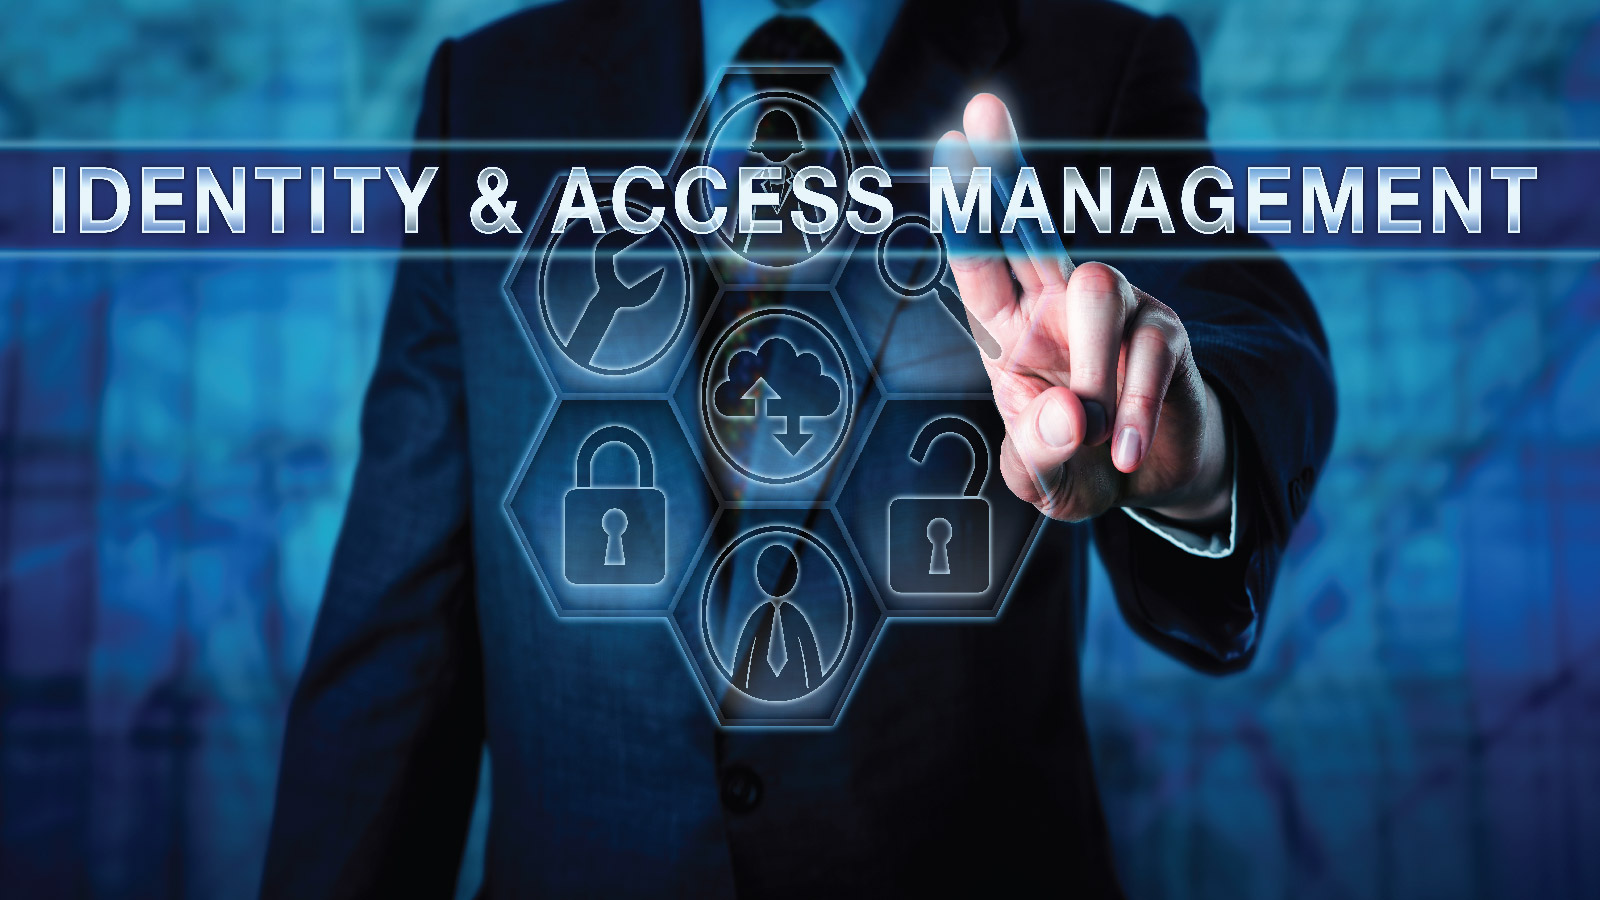 Cybersecurity, Multifactor Authentication, MFA, Identity Management, Identity, and Access Management (IAM), Database, Cloud